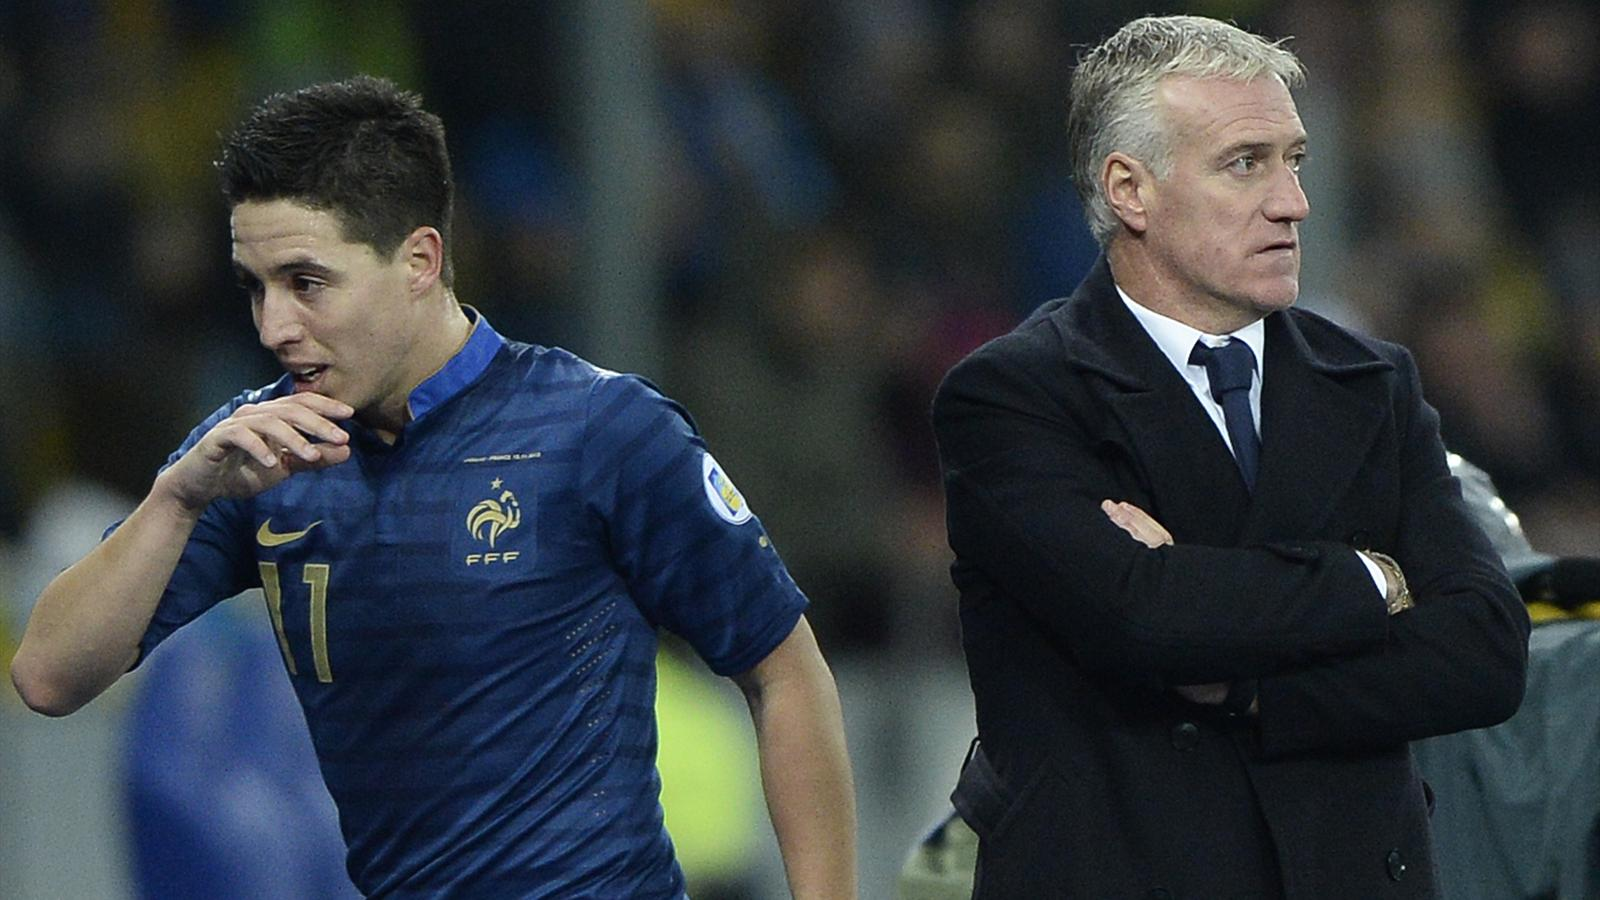 Samir Nasri and Didier Deschamps, Ukraine - France, 2014